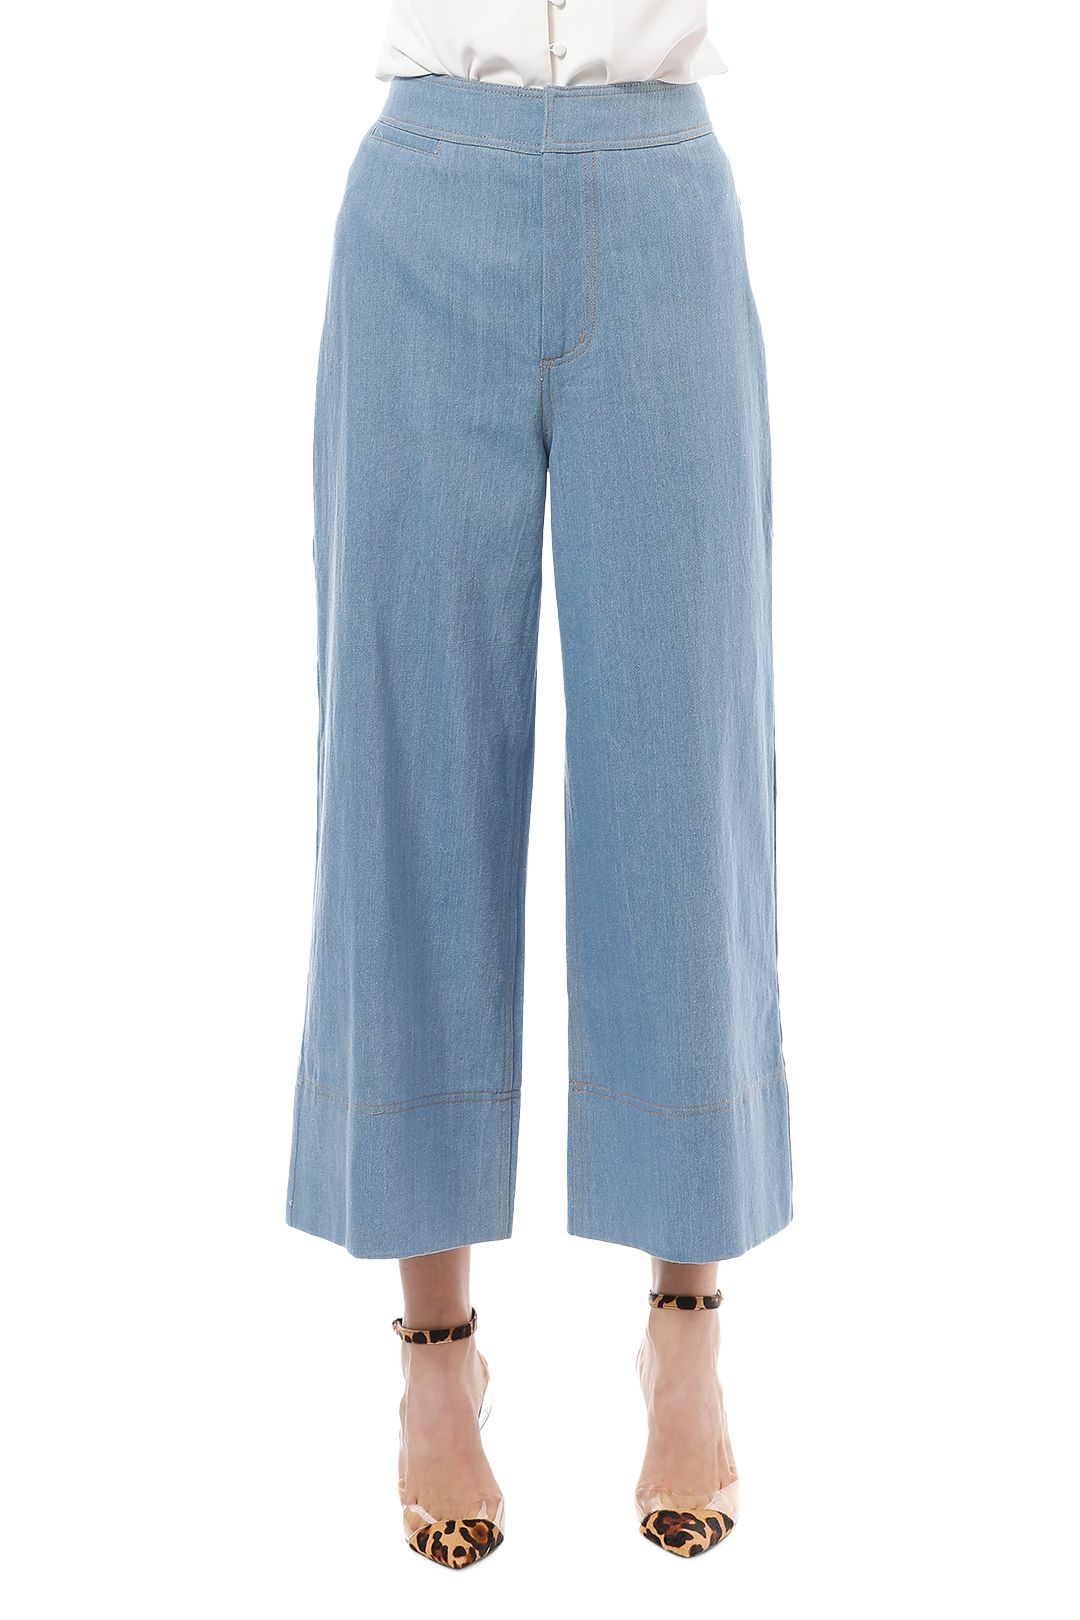 CMEO Collective - Adept Pants - Blue - Close Up